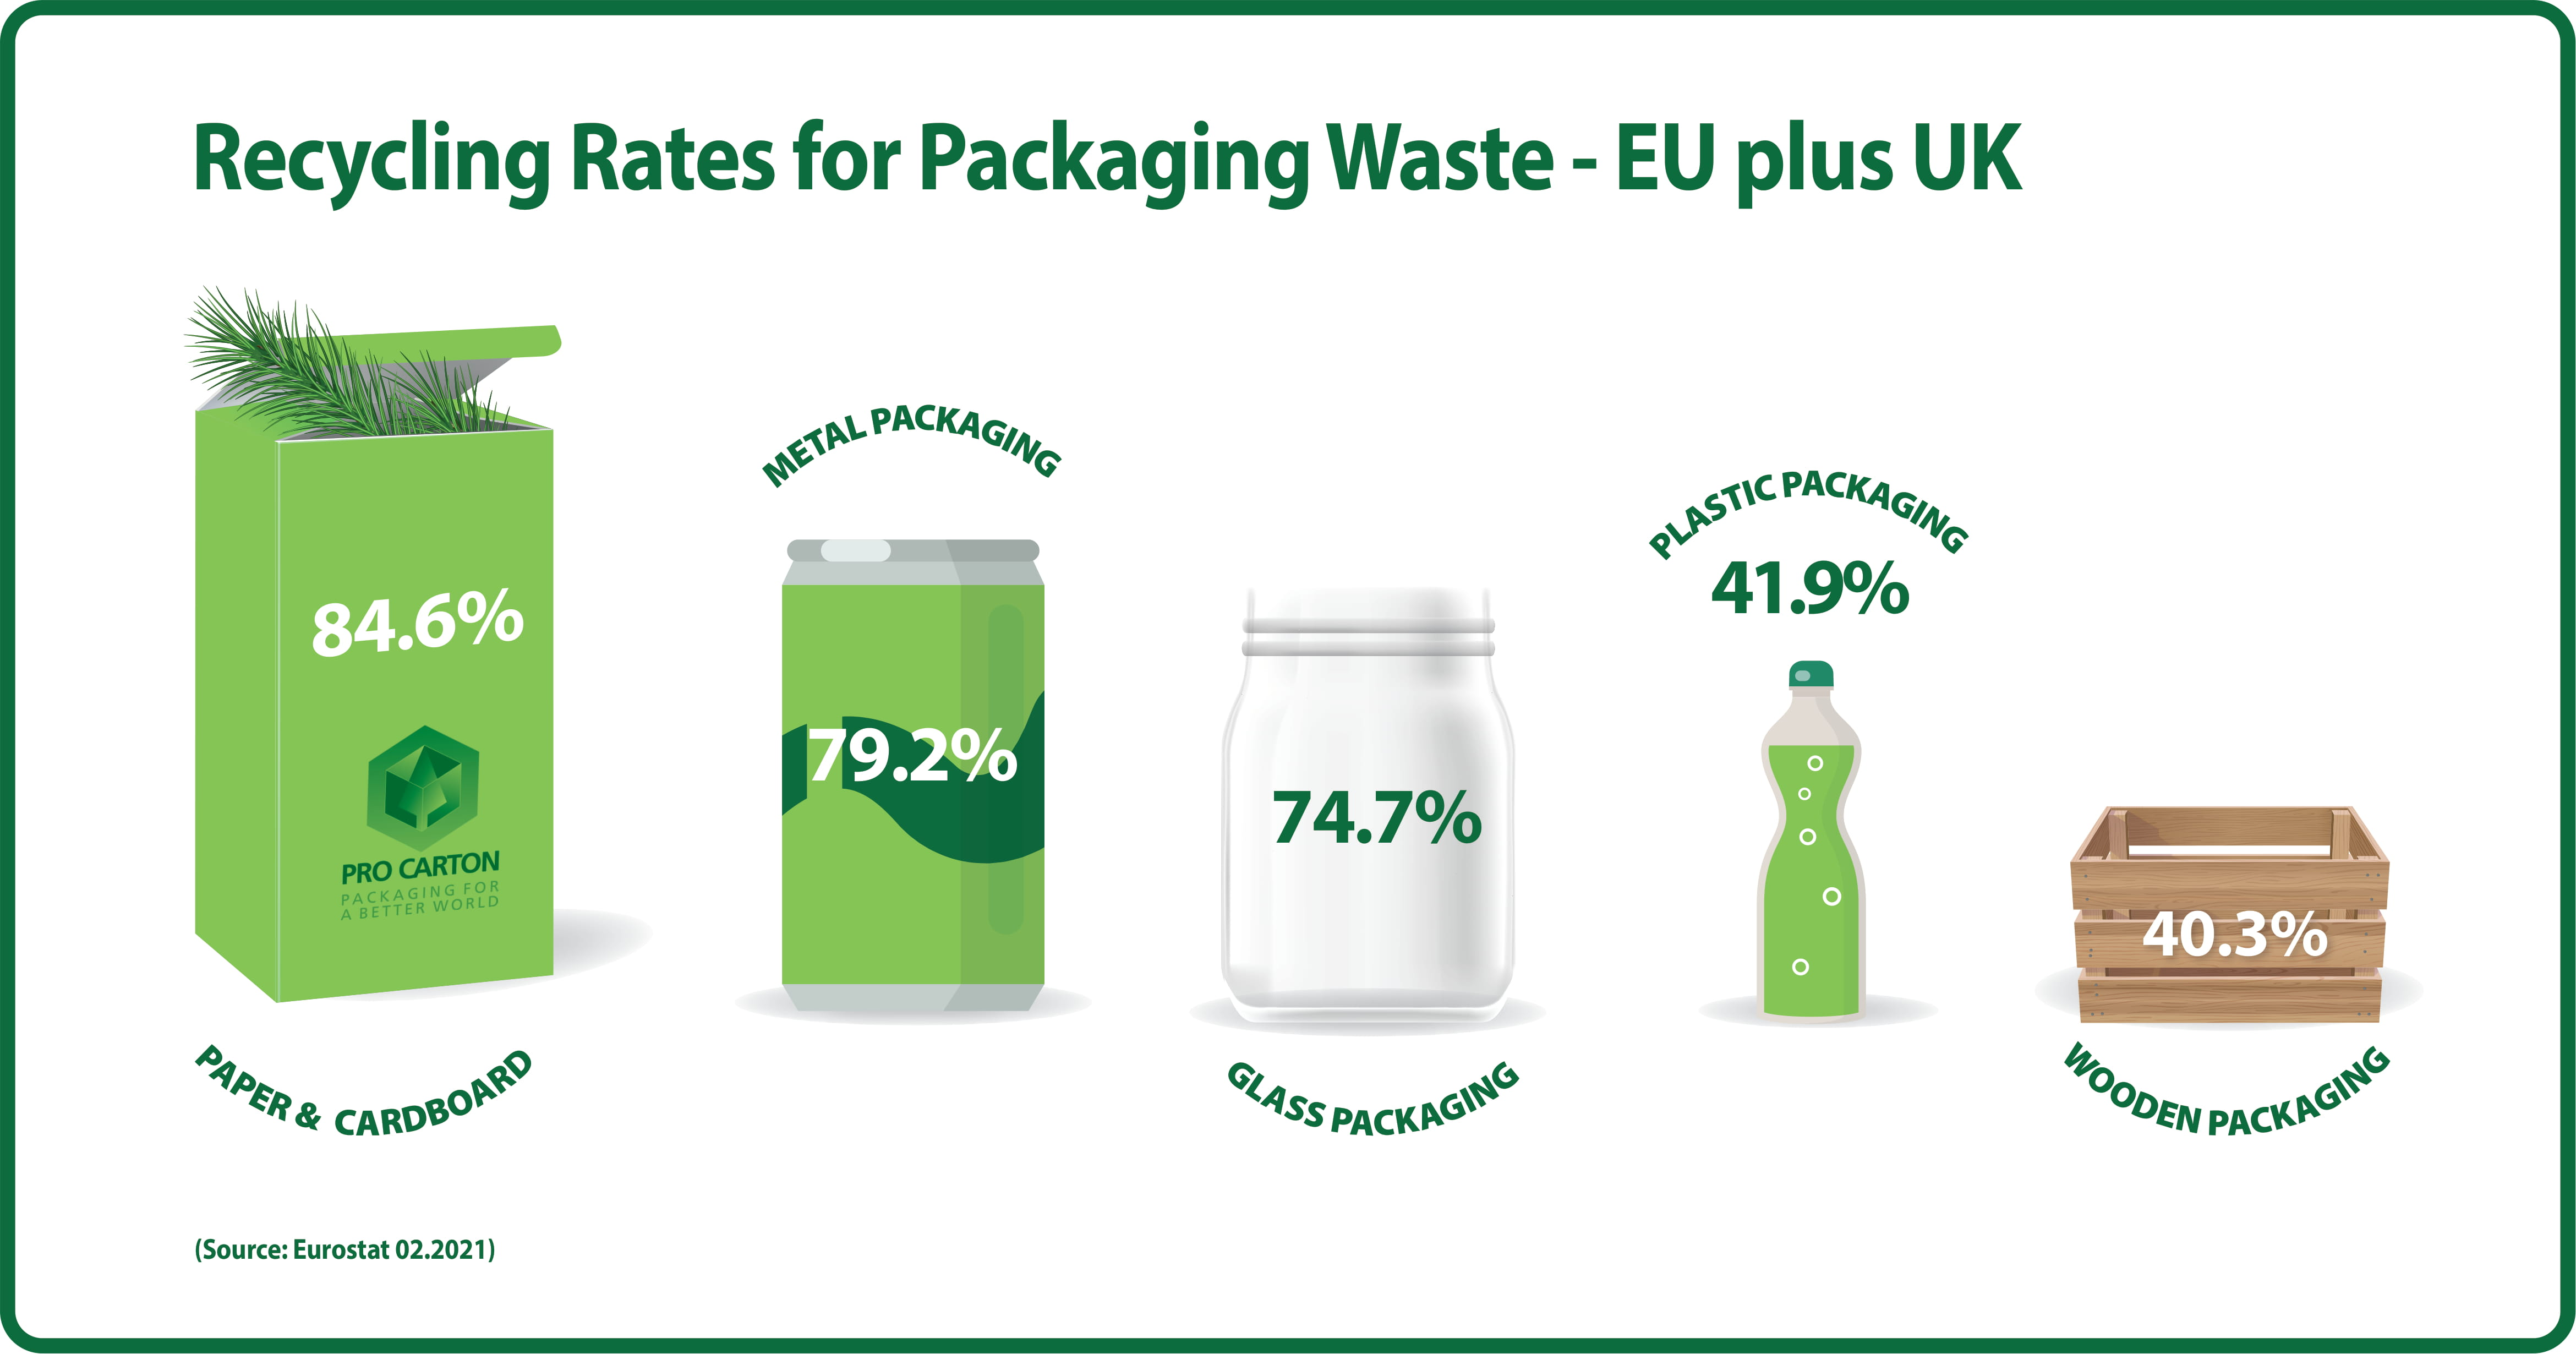 New Pro Carton Infographic shows Recycling Rates for Packaging Waste